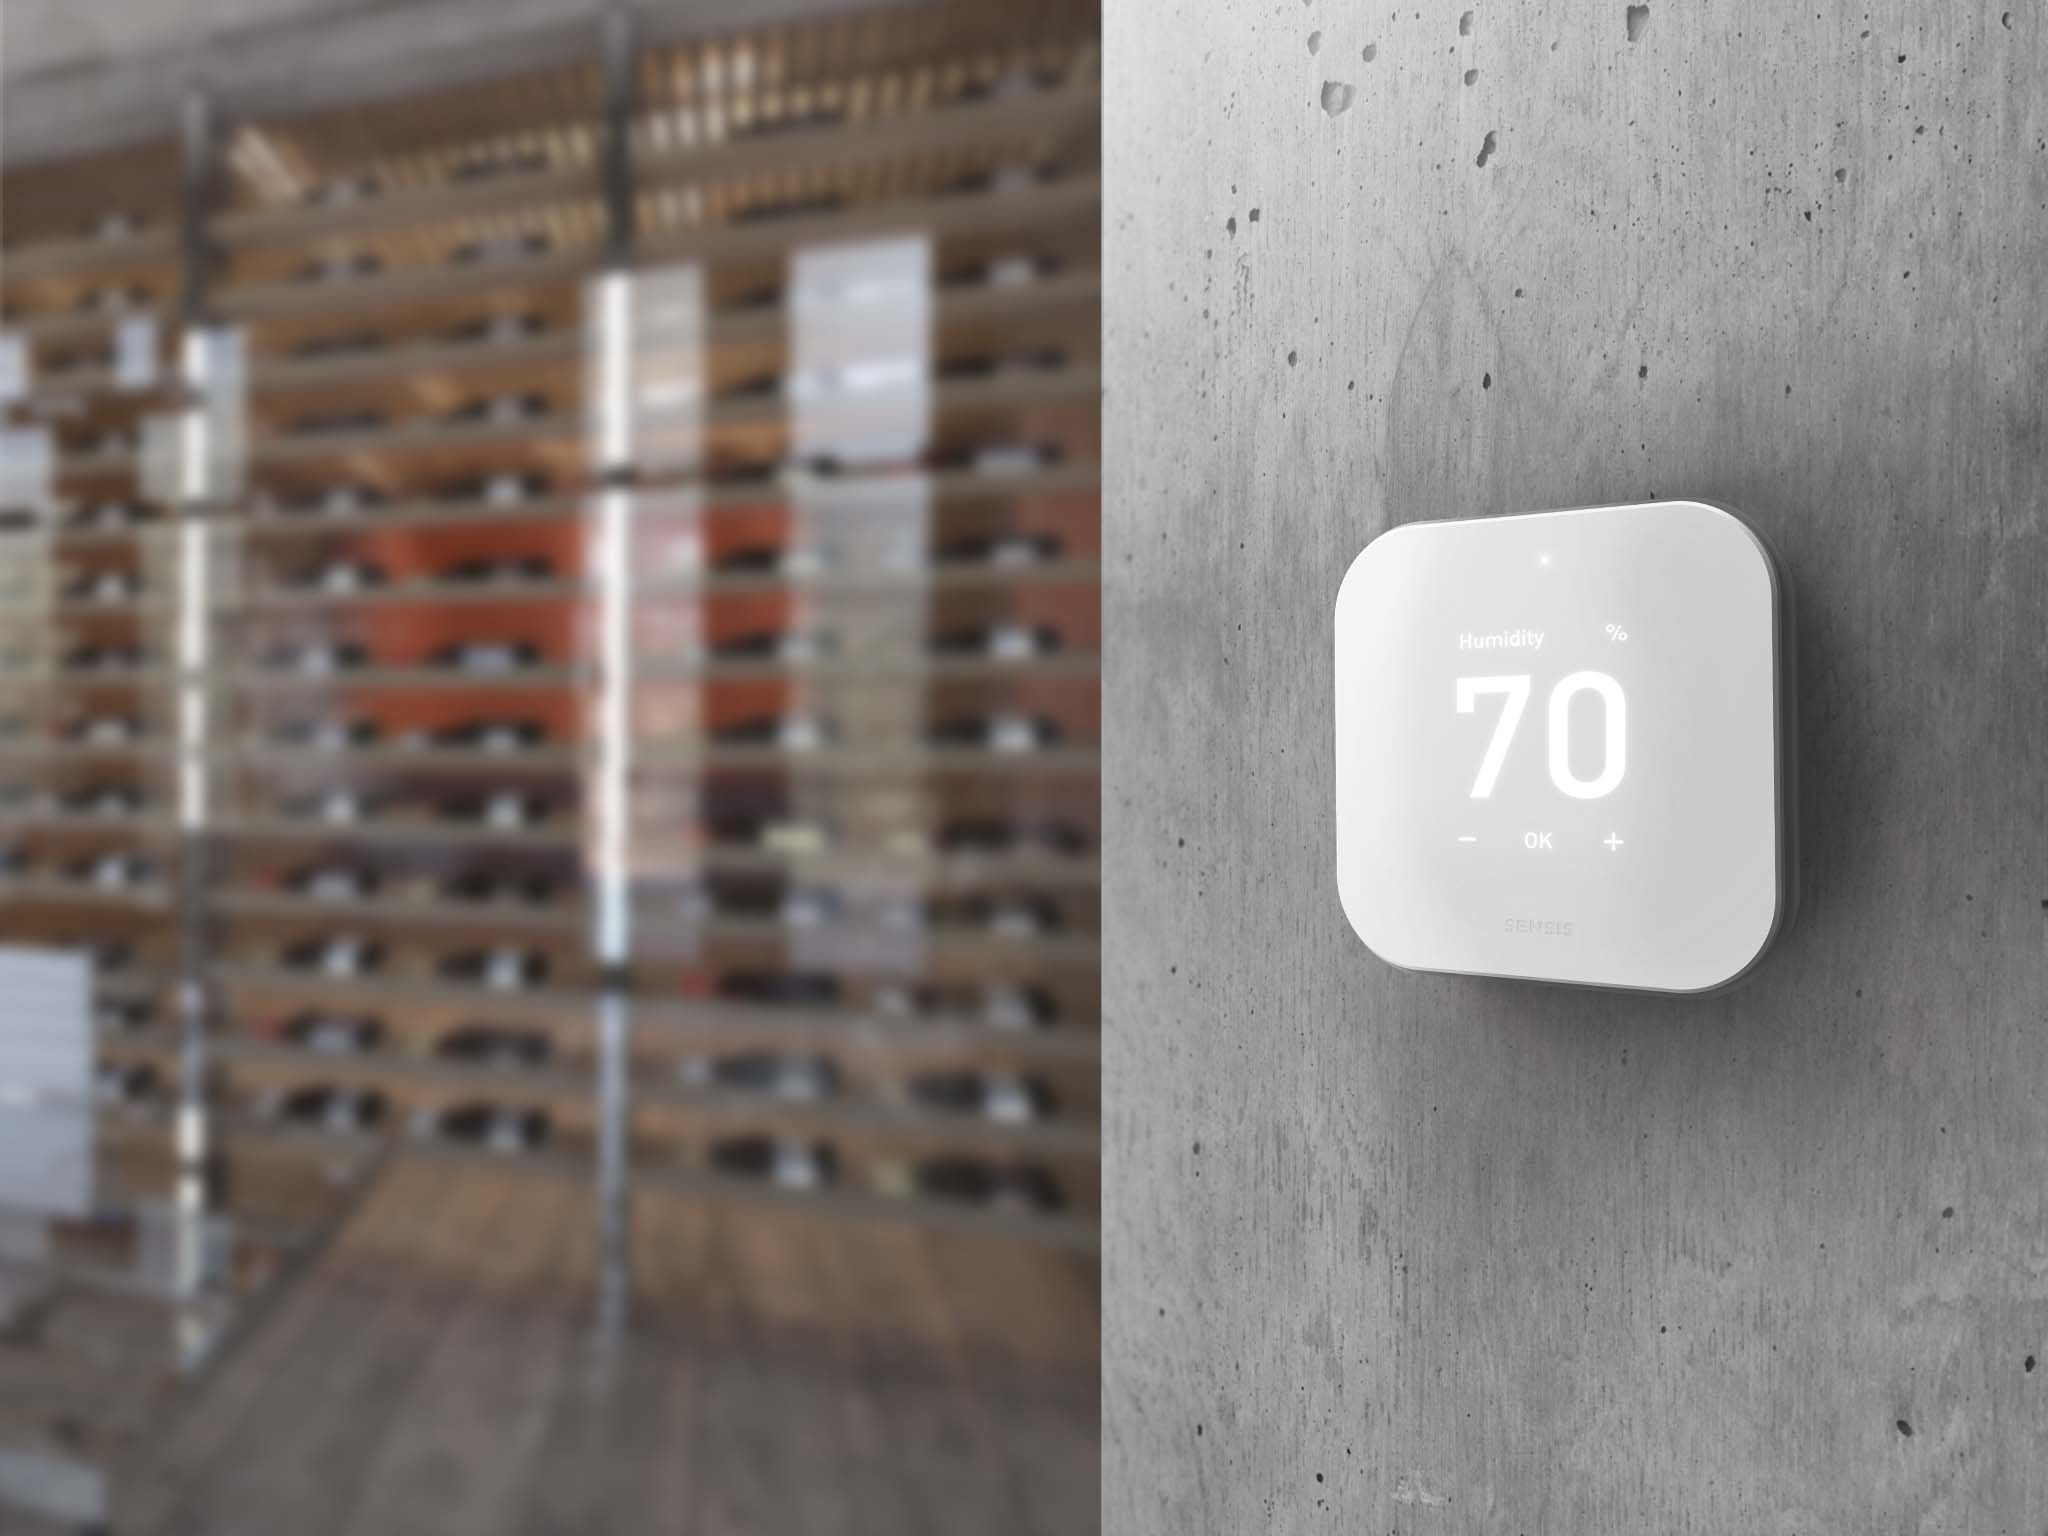 Pin By Dean Constantine On Thermostats Wine Aging Touch Panel Design Awards